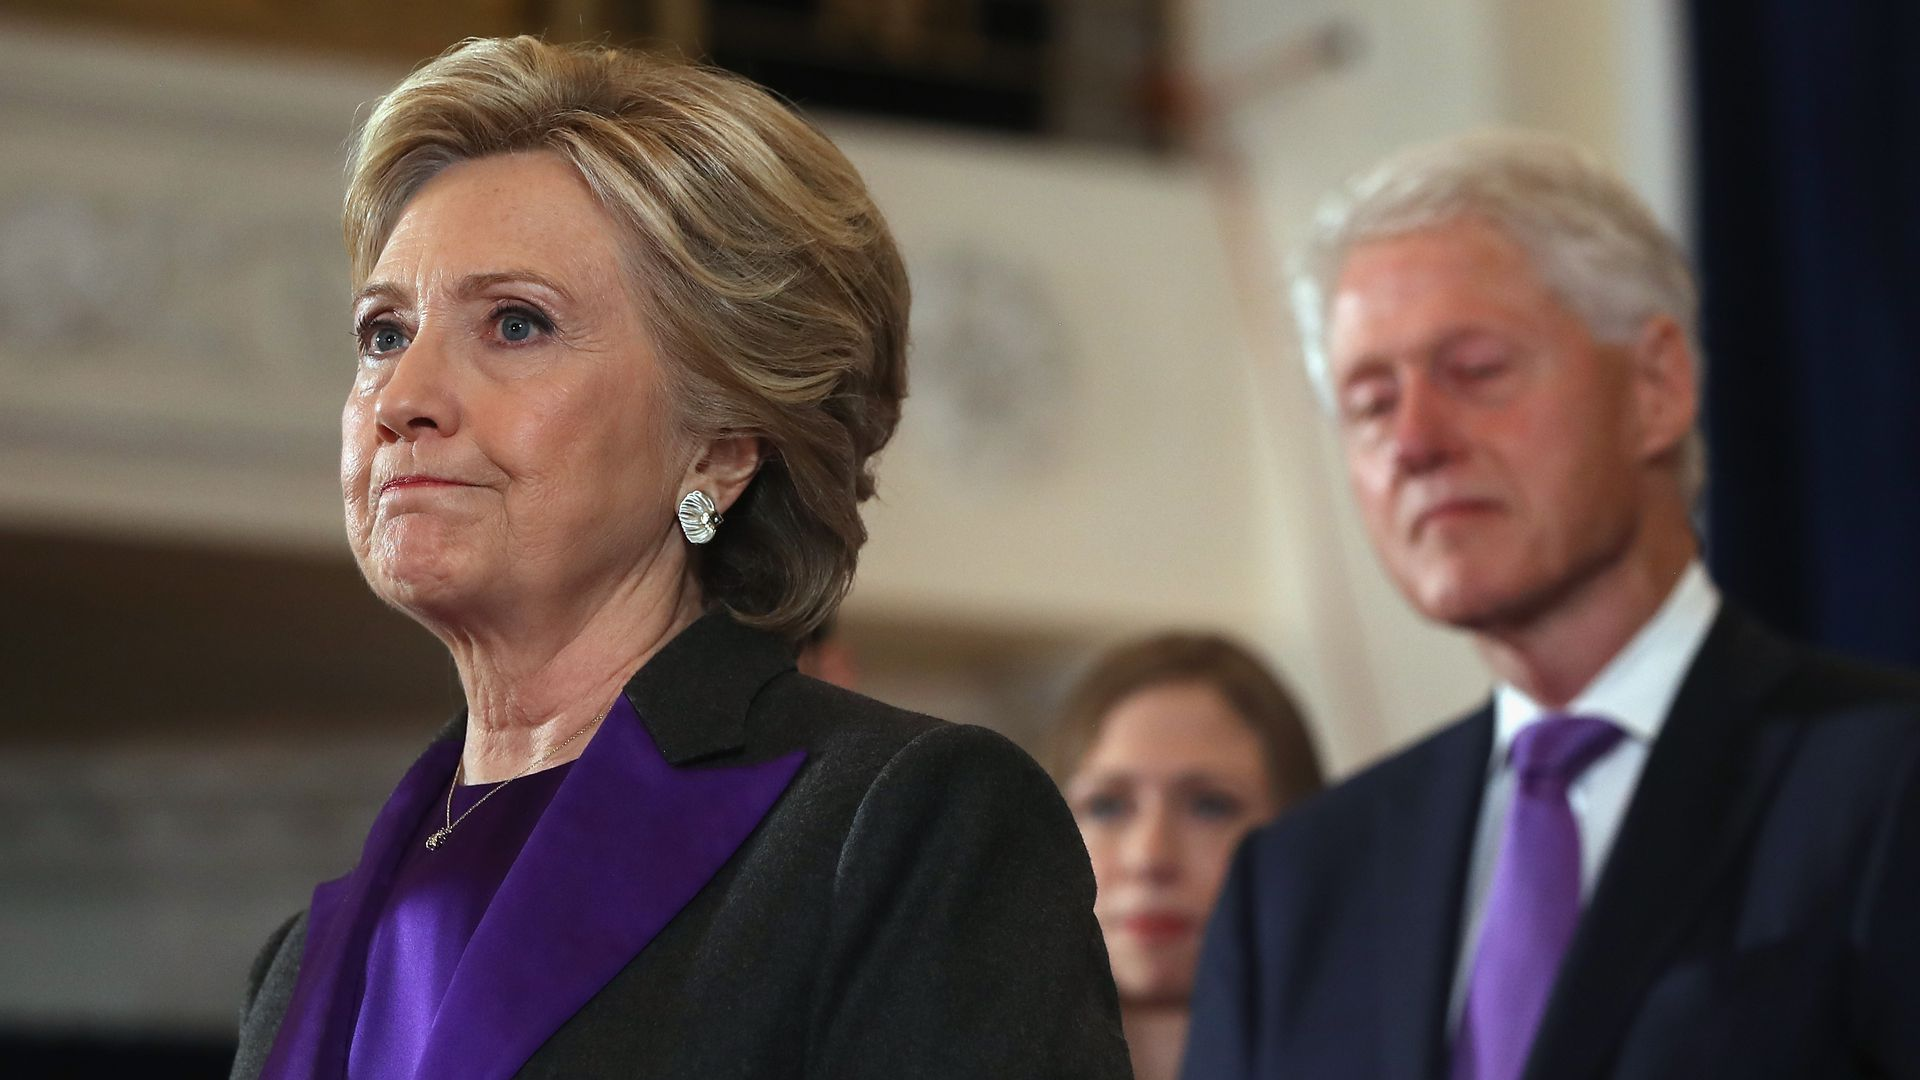 Former Secretary of State Hillary Clinton and her husband former President Bill Clinton. Photo: Justin Sullivan/Getty Images